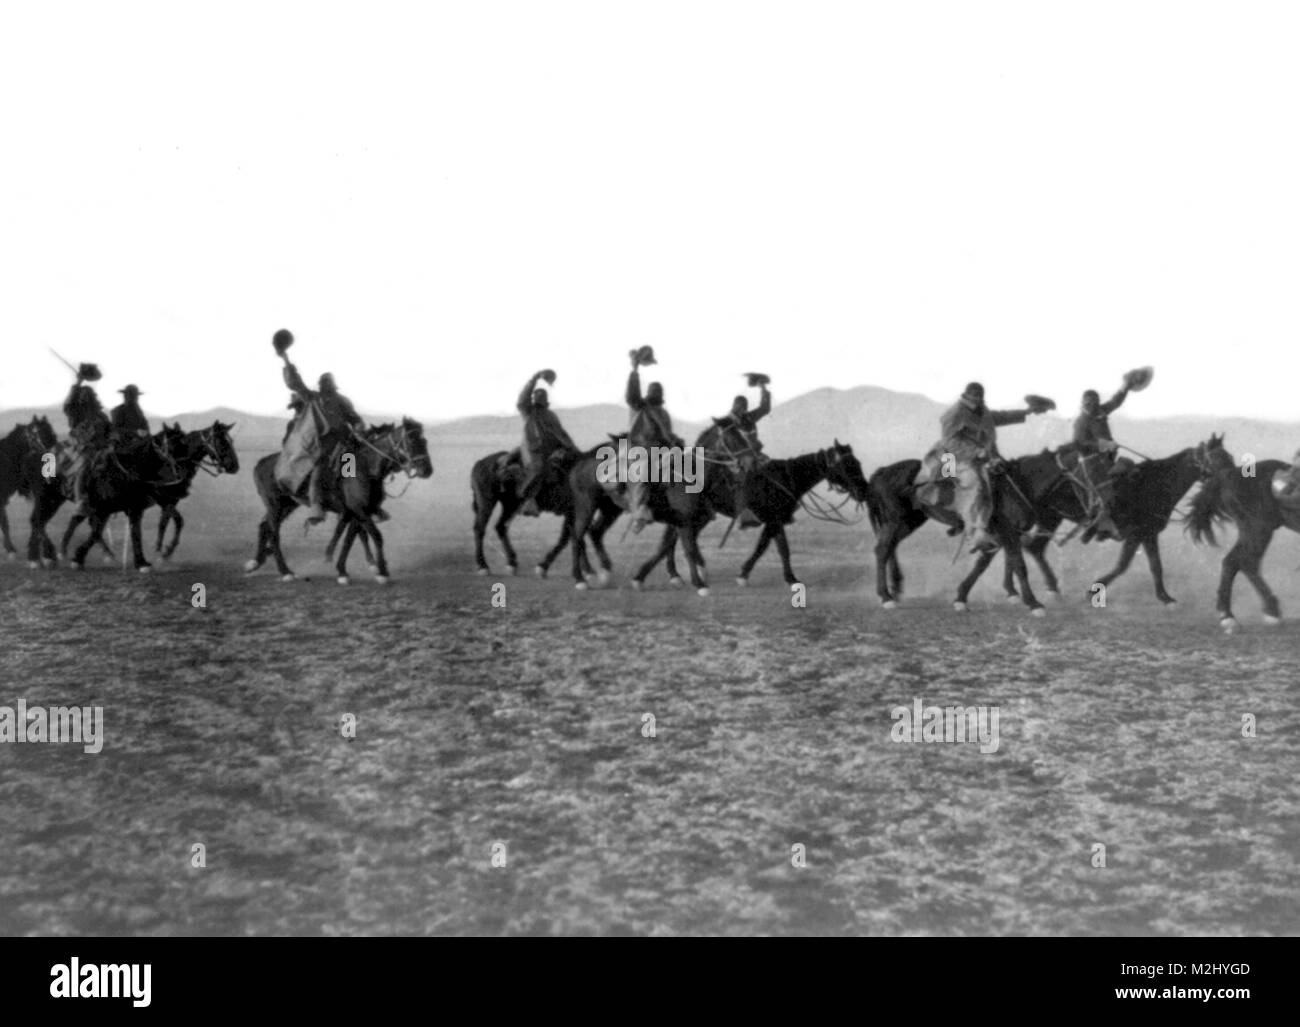 Pancho Villa Expedition, Buffalo Soldiers, 1916 - Stock Image